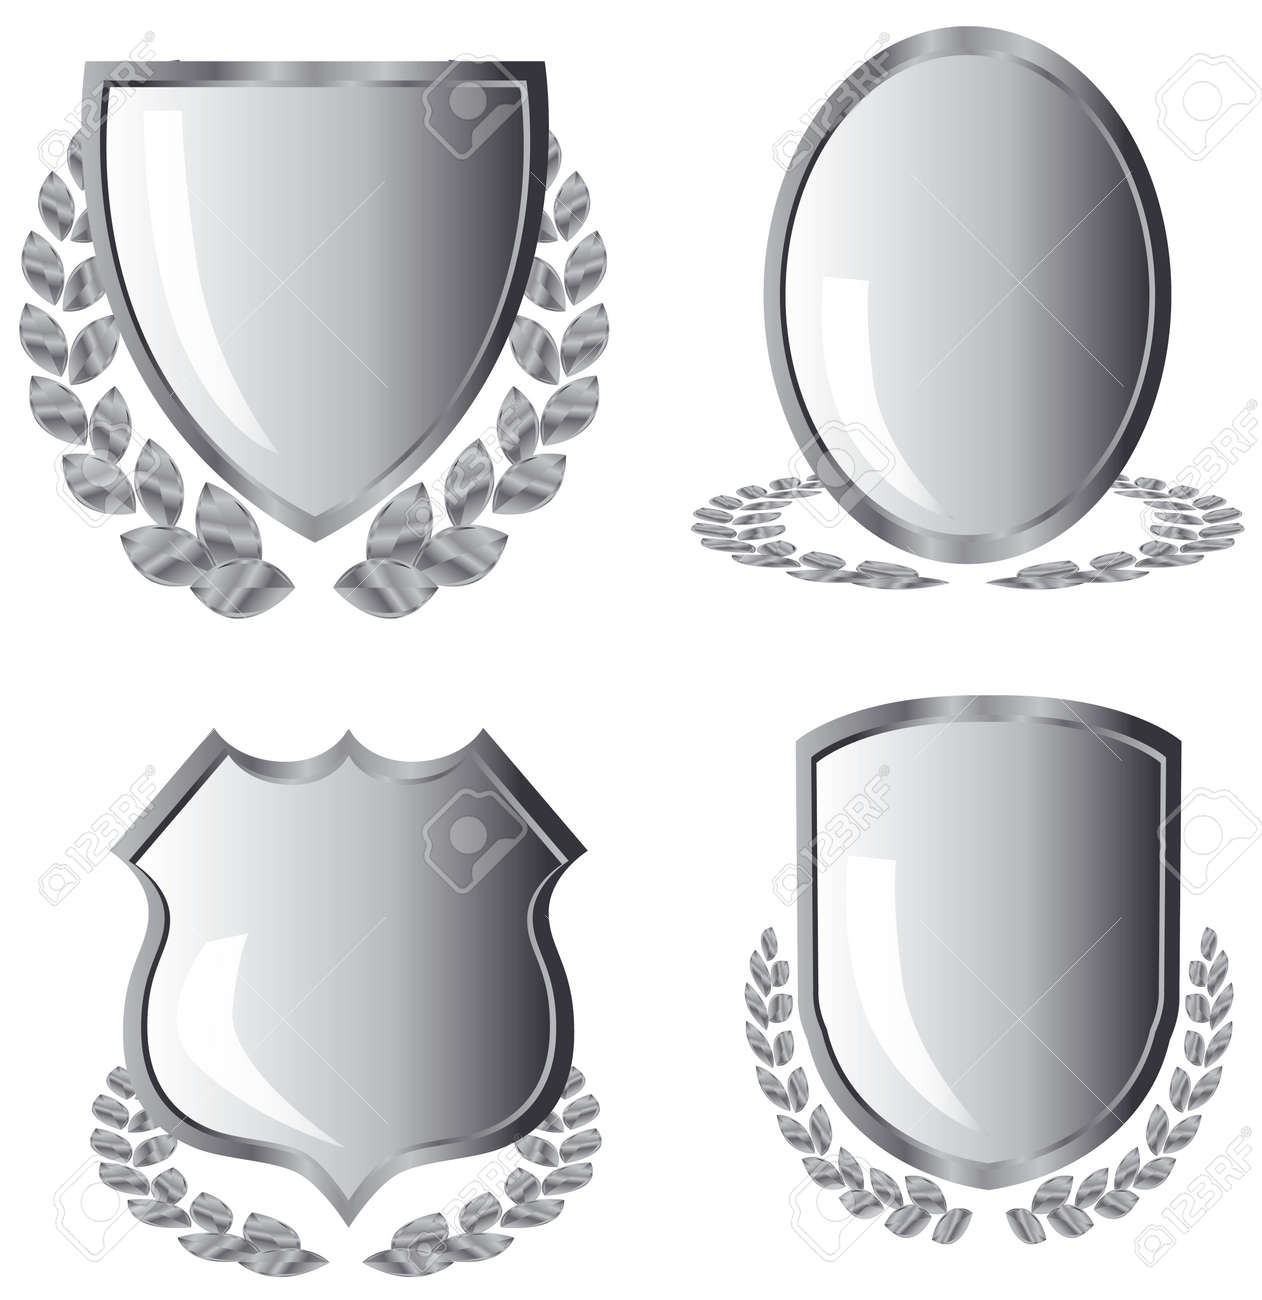 silver shields with laurel wreath on white background - 3883902